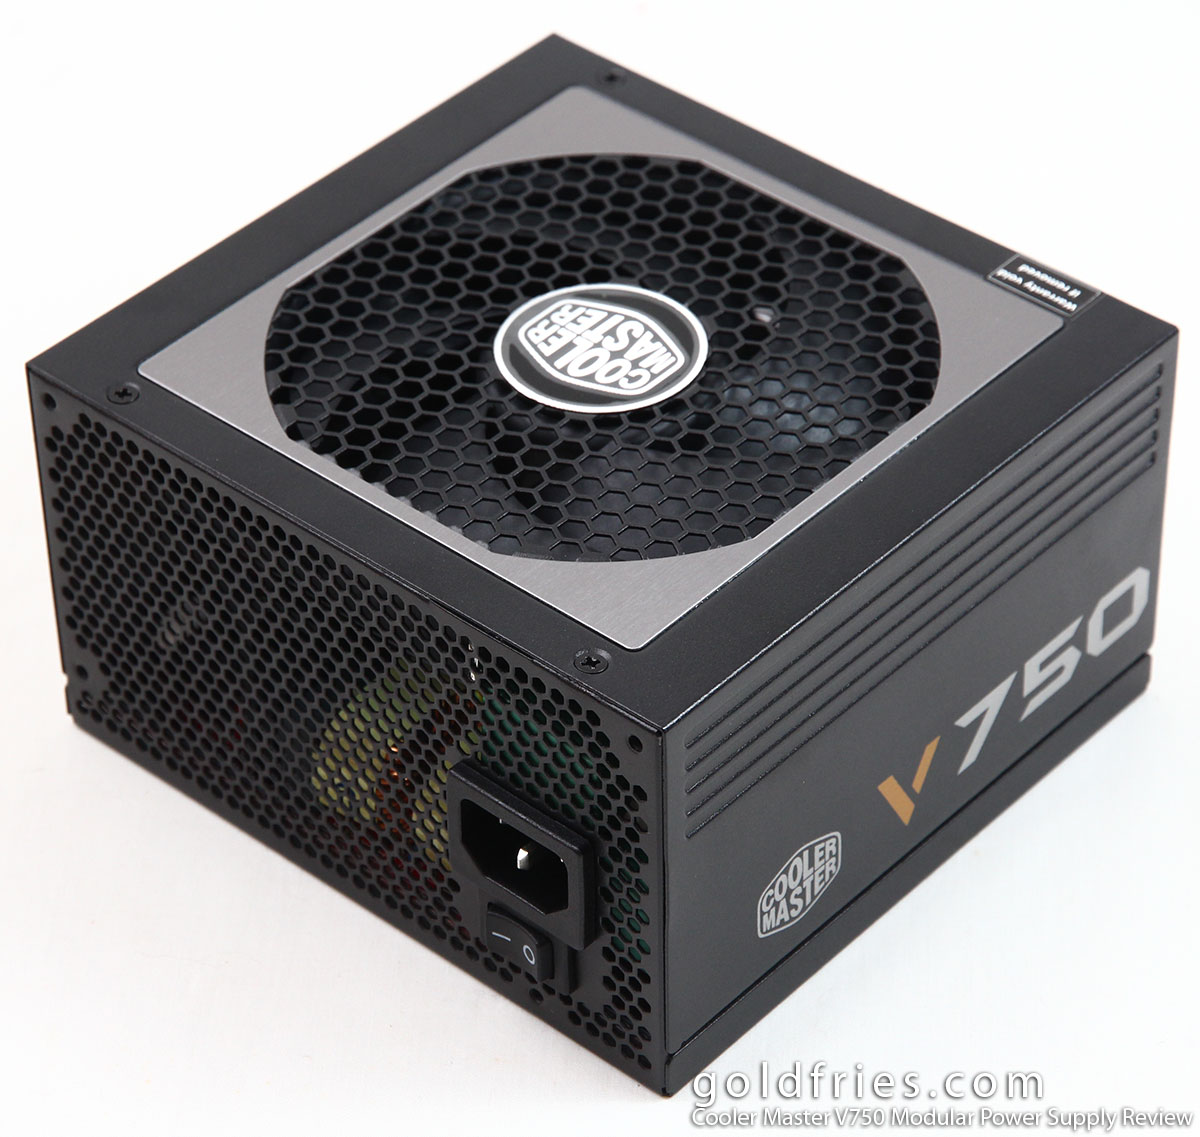 Cooler Master V750 Modular Power Supply Review